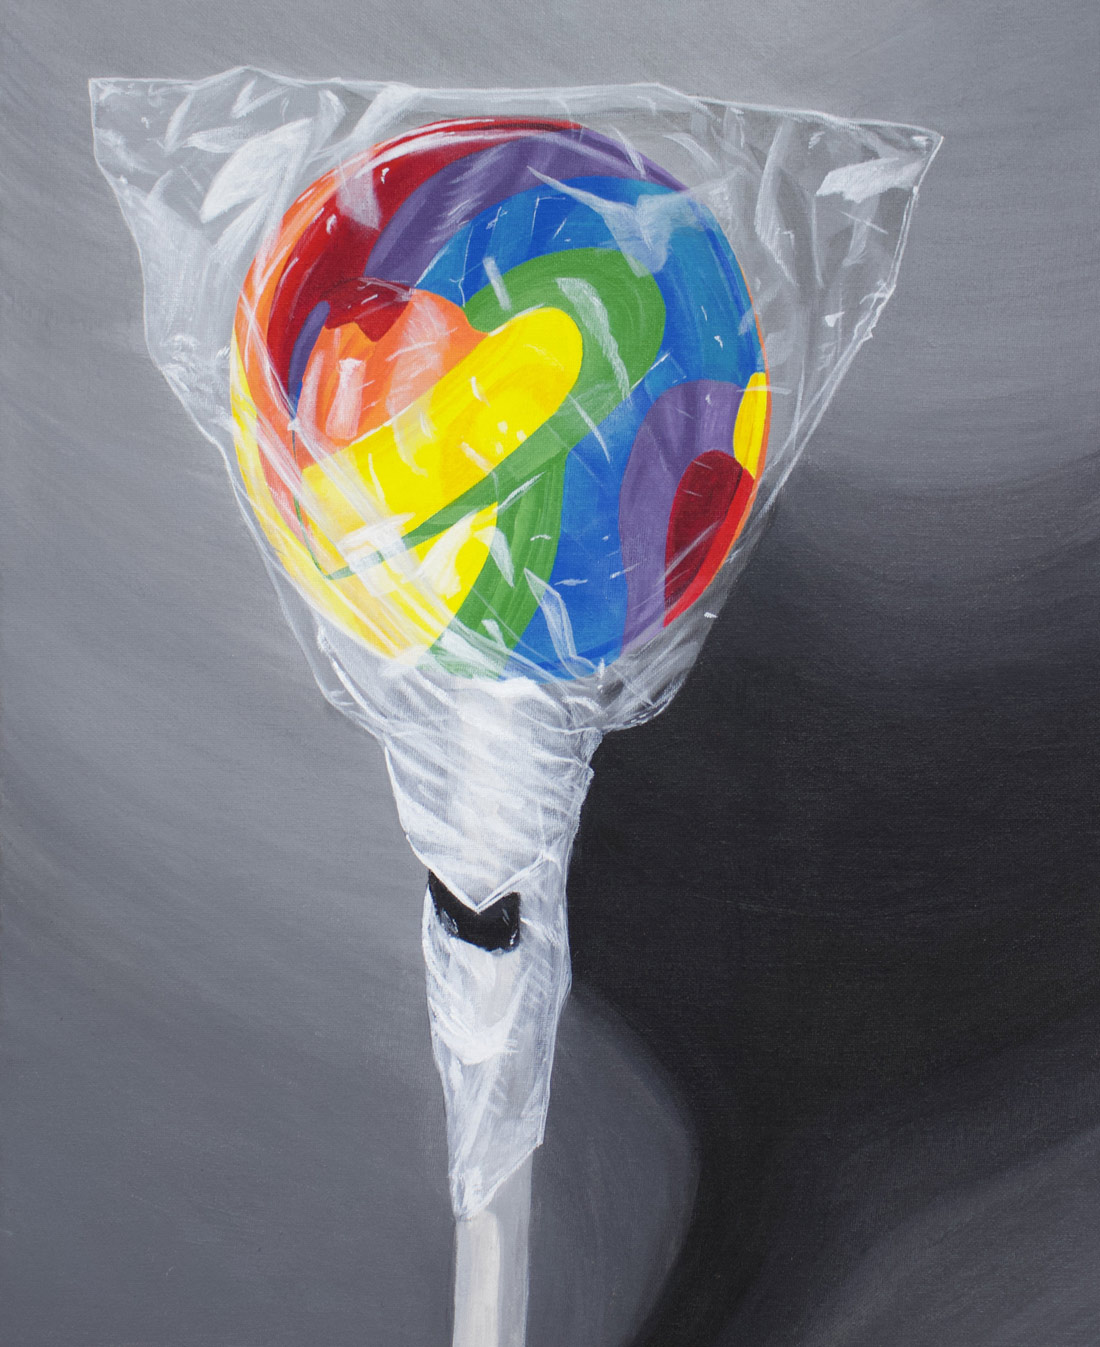 Painting of a lolliepop created by a studio arts student.